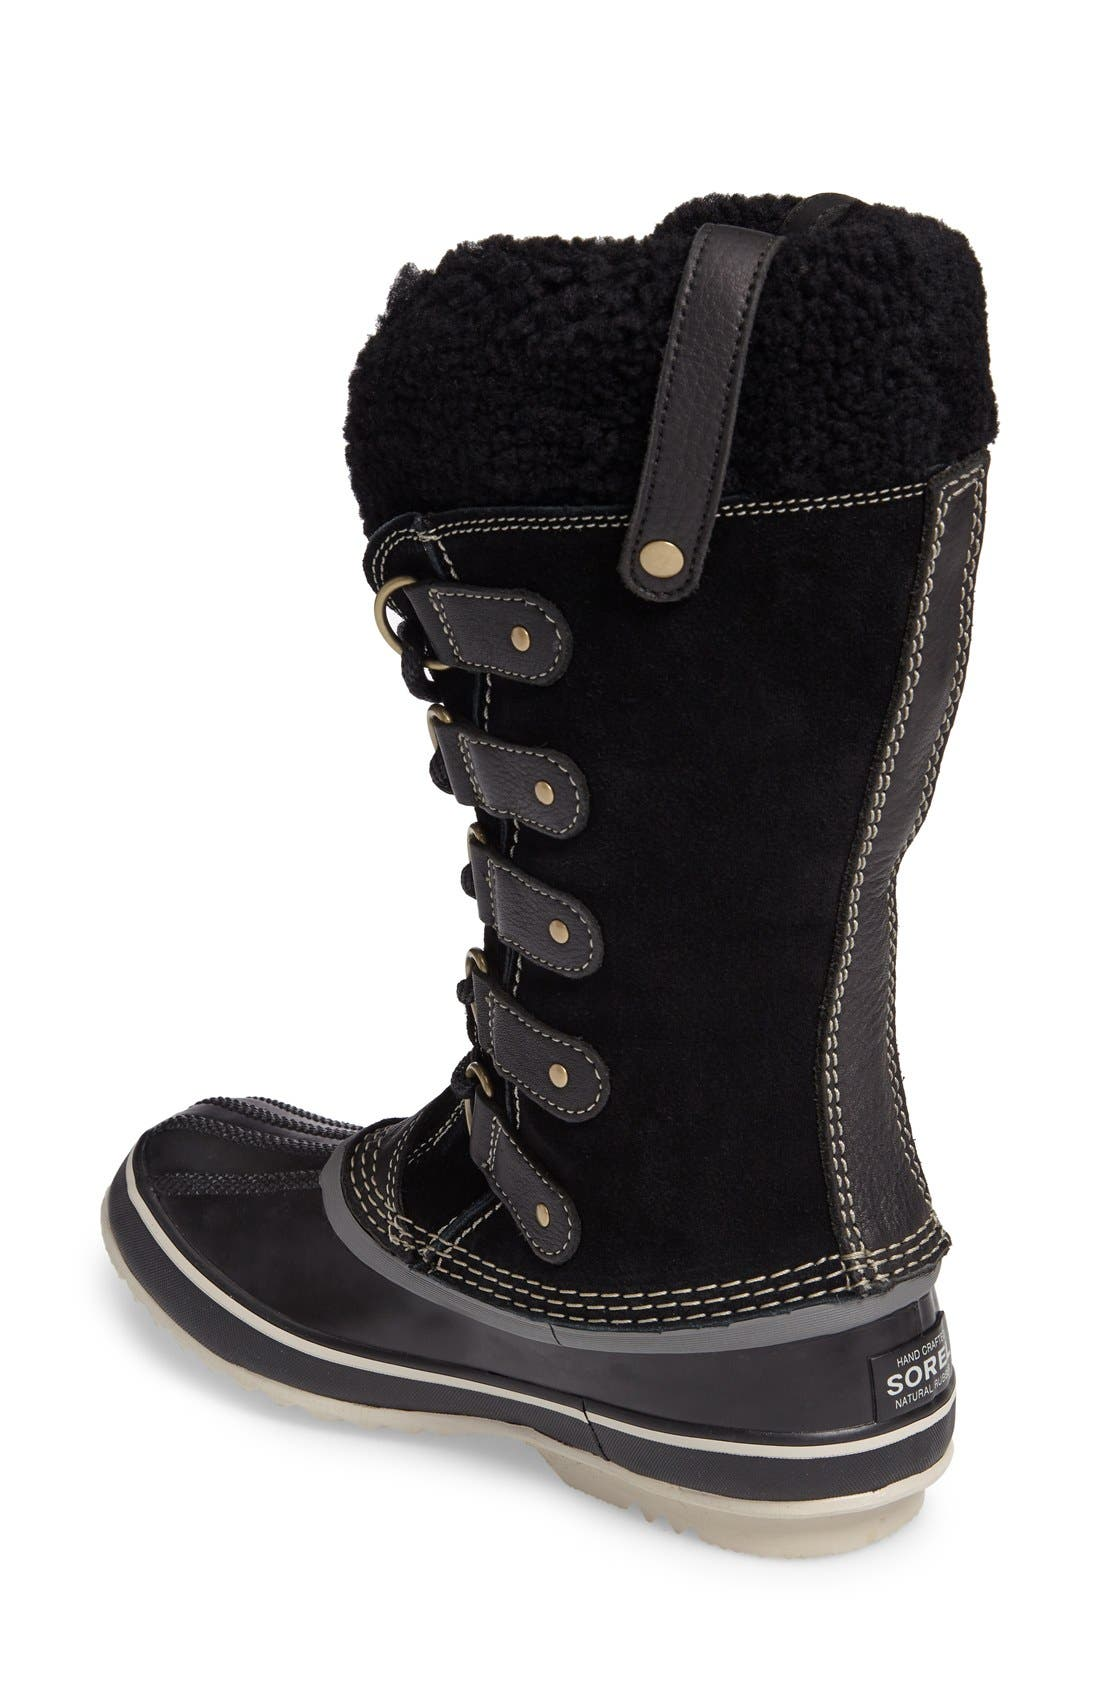 Alternate Image 2  - SOREL Joan of Arctic Genuine Shearling Waterproof Boot (Women)